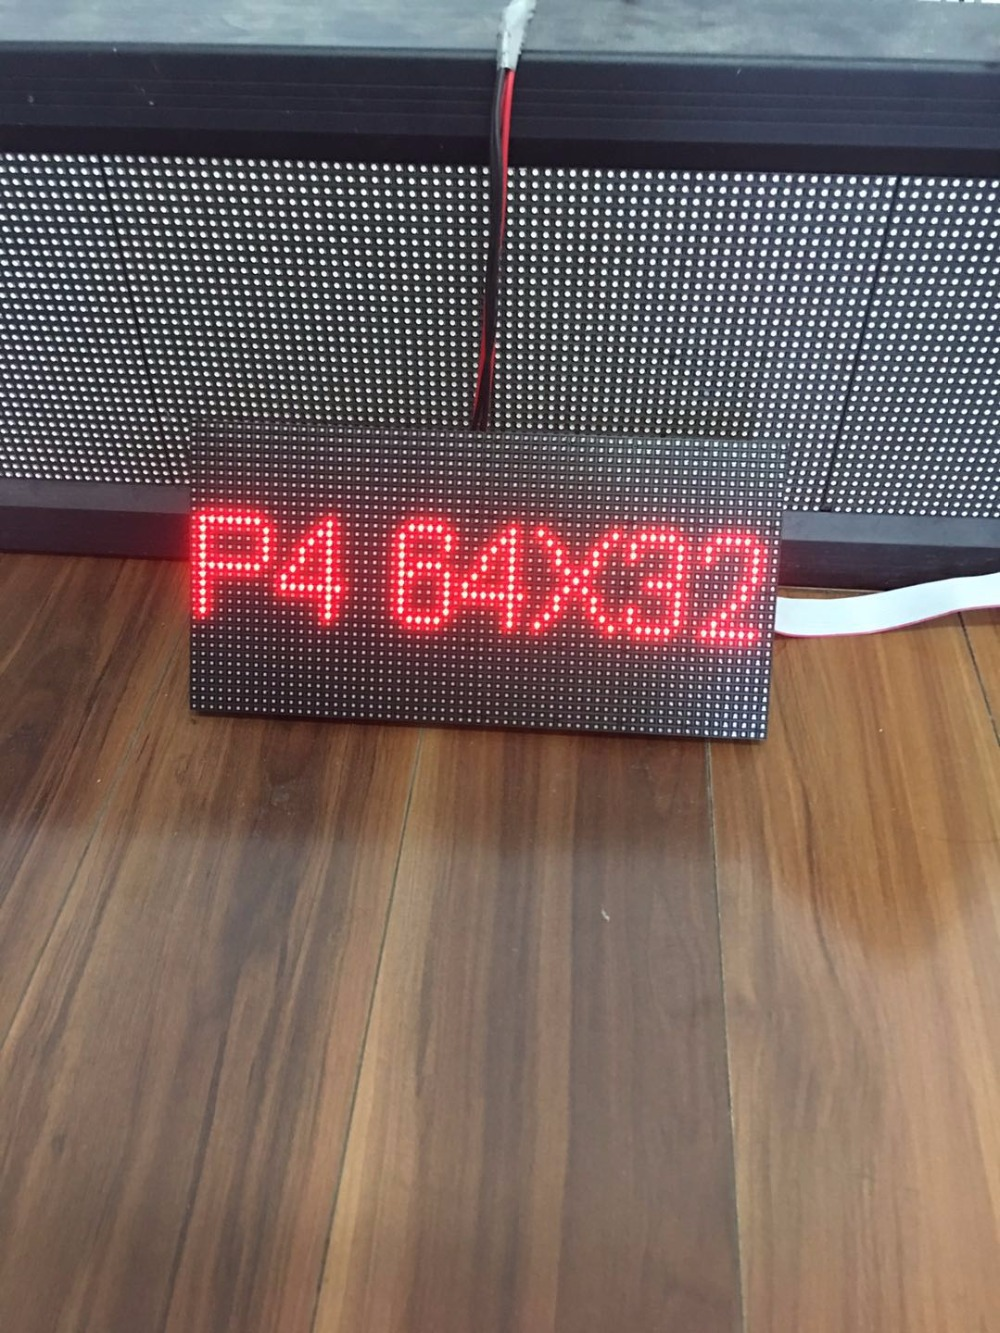 Купить с кэшбэком HD SMD P4 P5 P8 P10 rgb full color outdoor indoor led screen panel led display module led advertising dot matrix led billboard